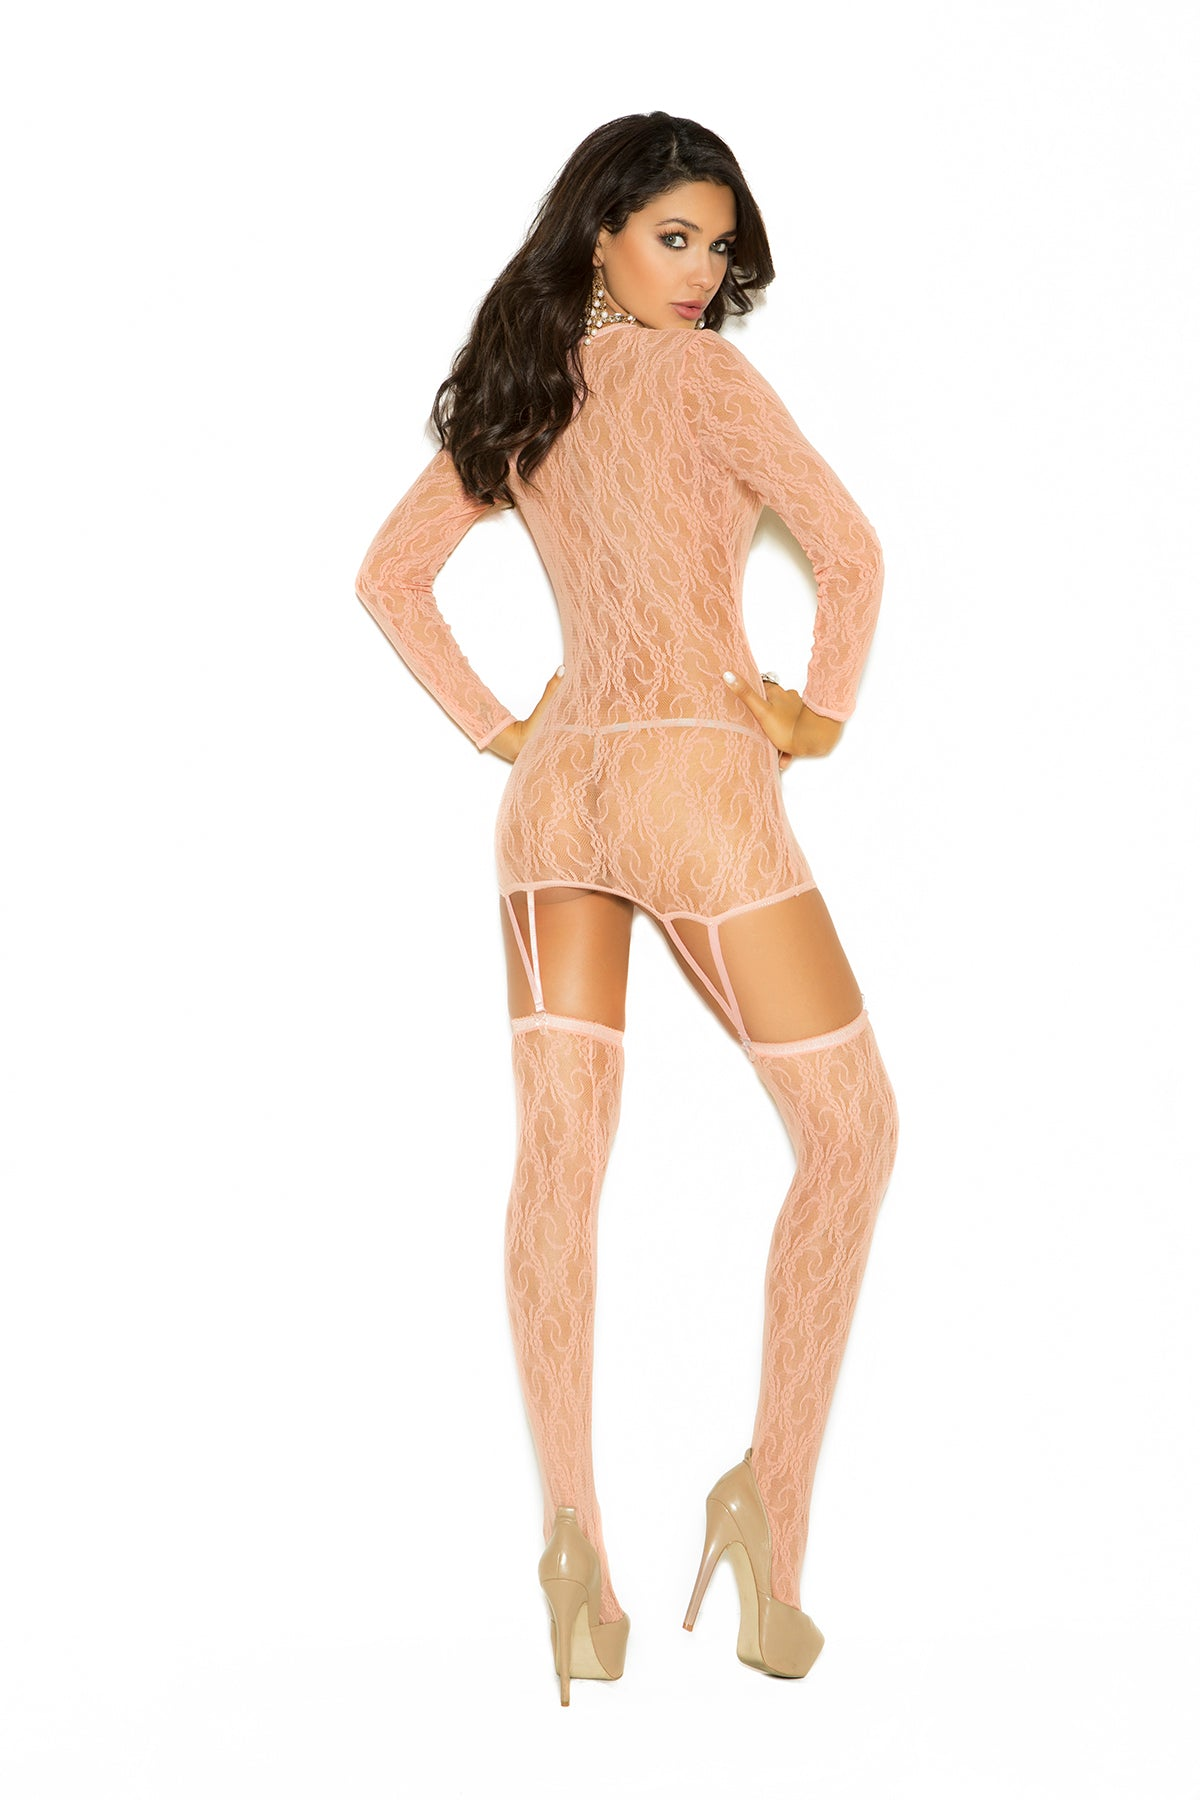 LONG SLEEVE CAMISETTE W/ HOSE